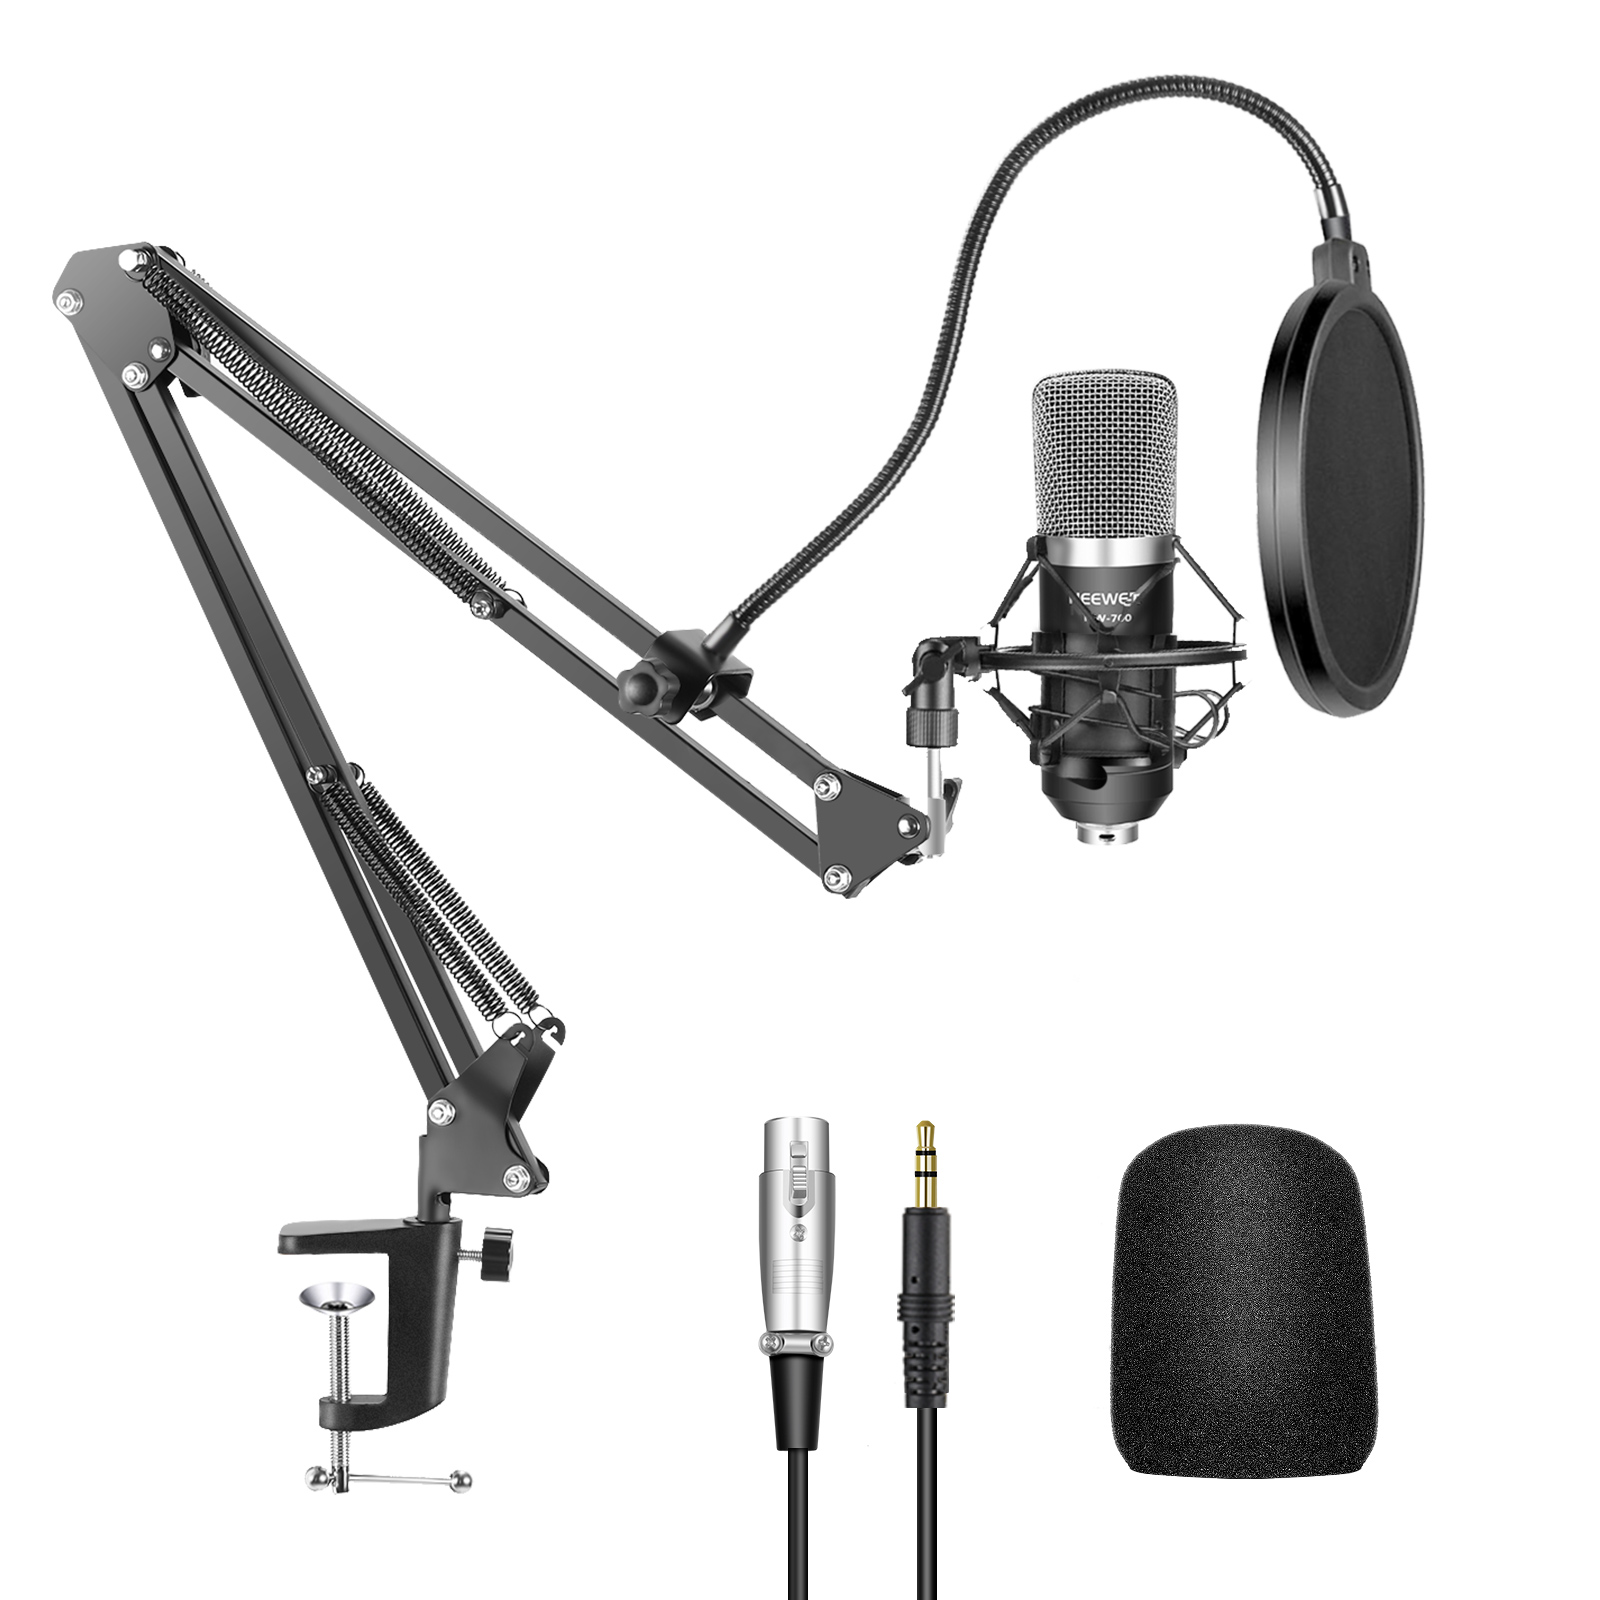 Neewer NW-700 Professional Studio Broadcasting Recording Condenser Microphone & NW-35 Adjustable Recording Microphone Suspension Scissor Arm Stand with Shock Mount and Mounting Clamp Kit Image